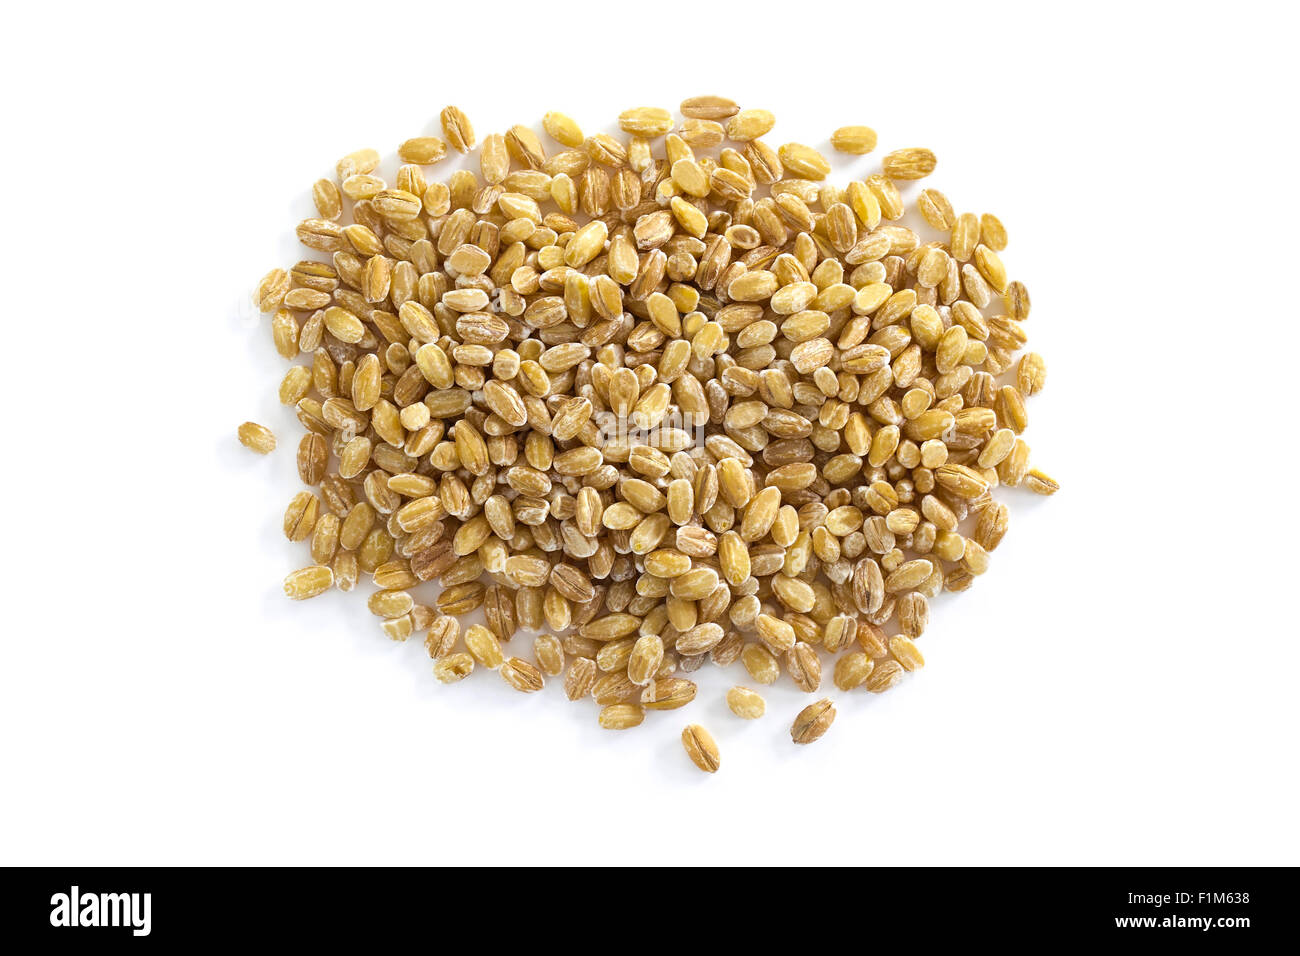 Pearl barley seeds from above isolated on a white background - Stock Image